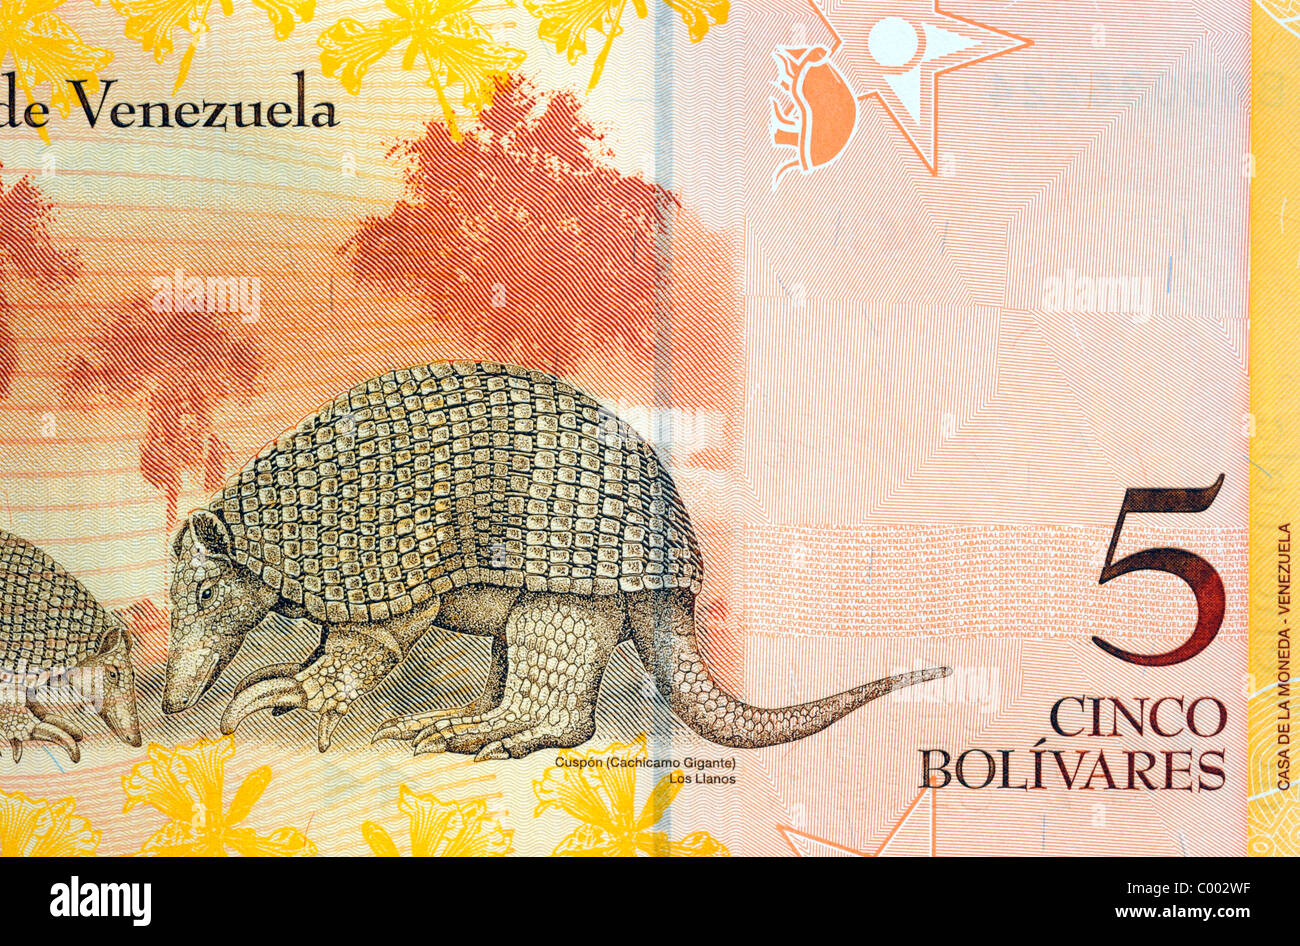 Venezuela 5 Five Cinco Bolivares Bank Note. - Stock Image